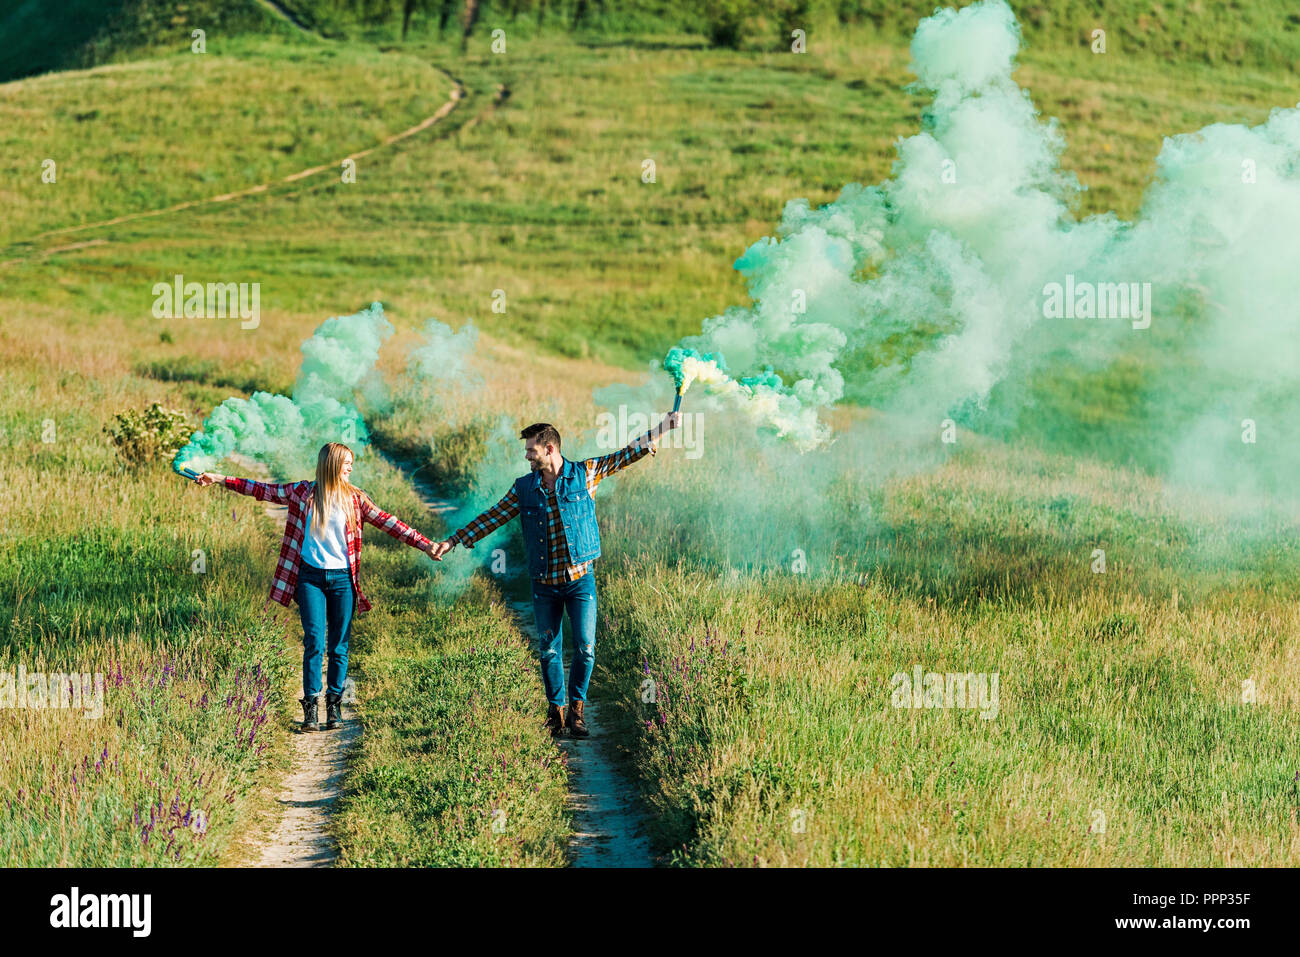 young couple holding green smoke bombs on rural meadow - Stock Image